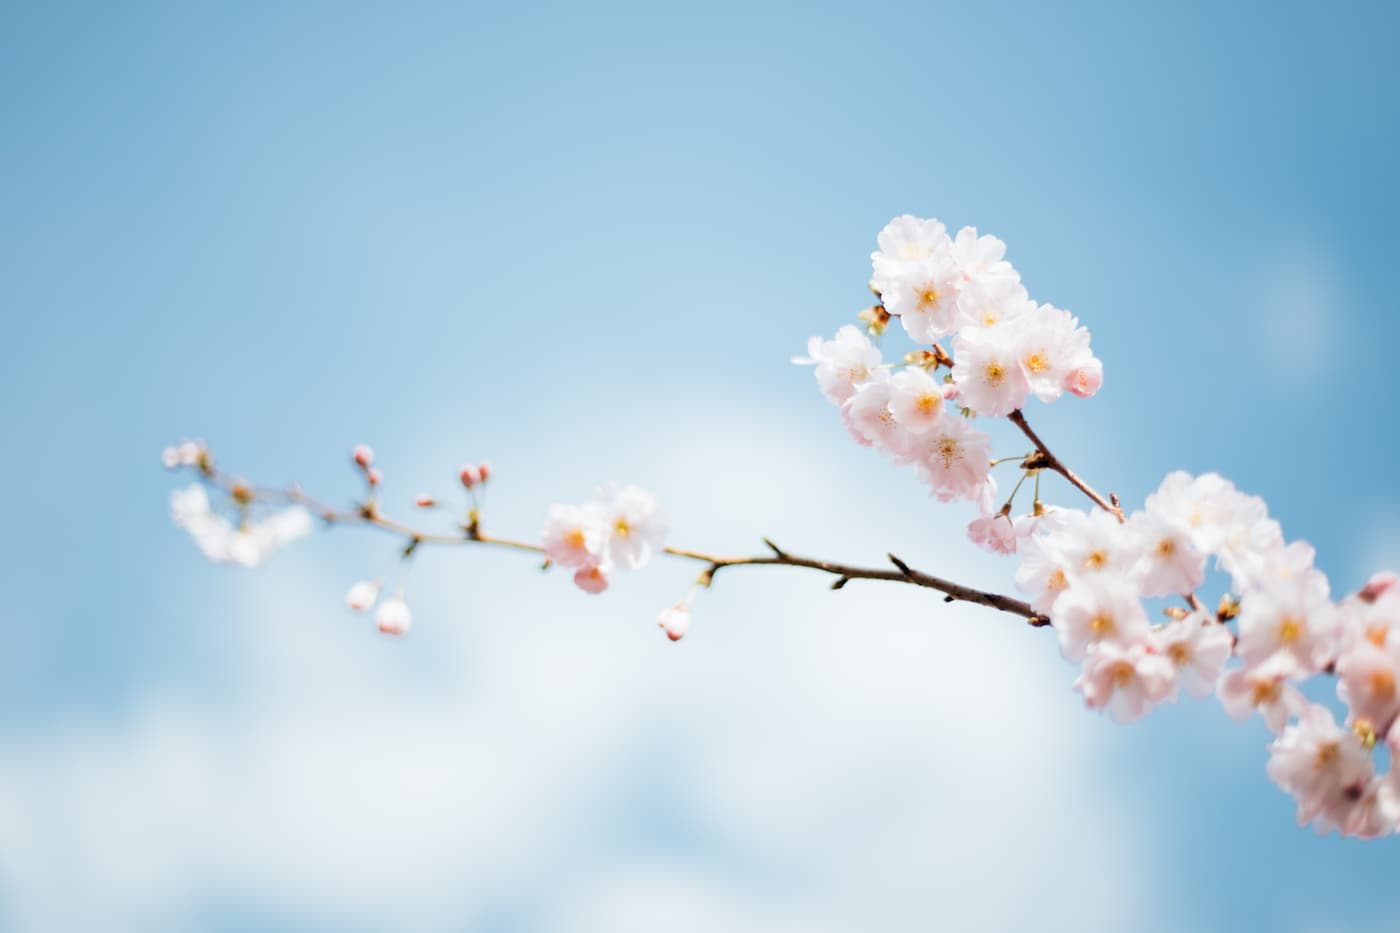 A spring bloom